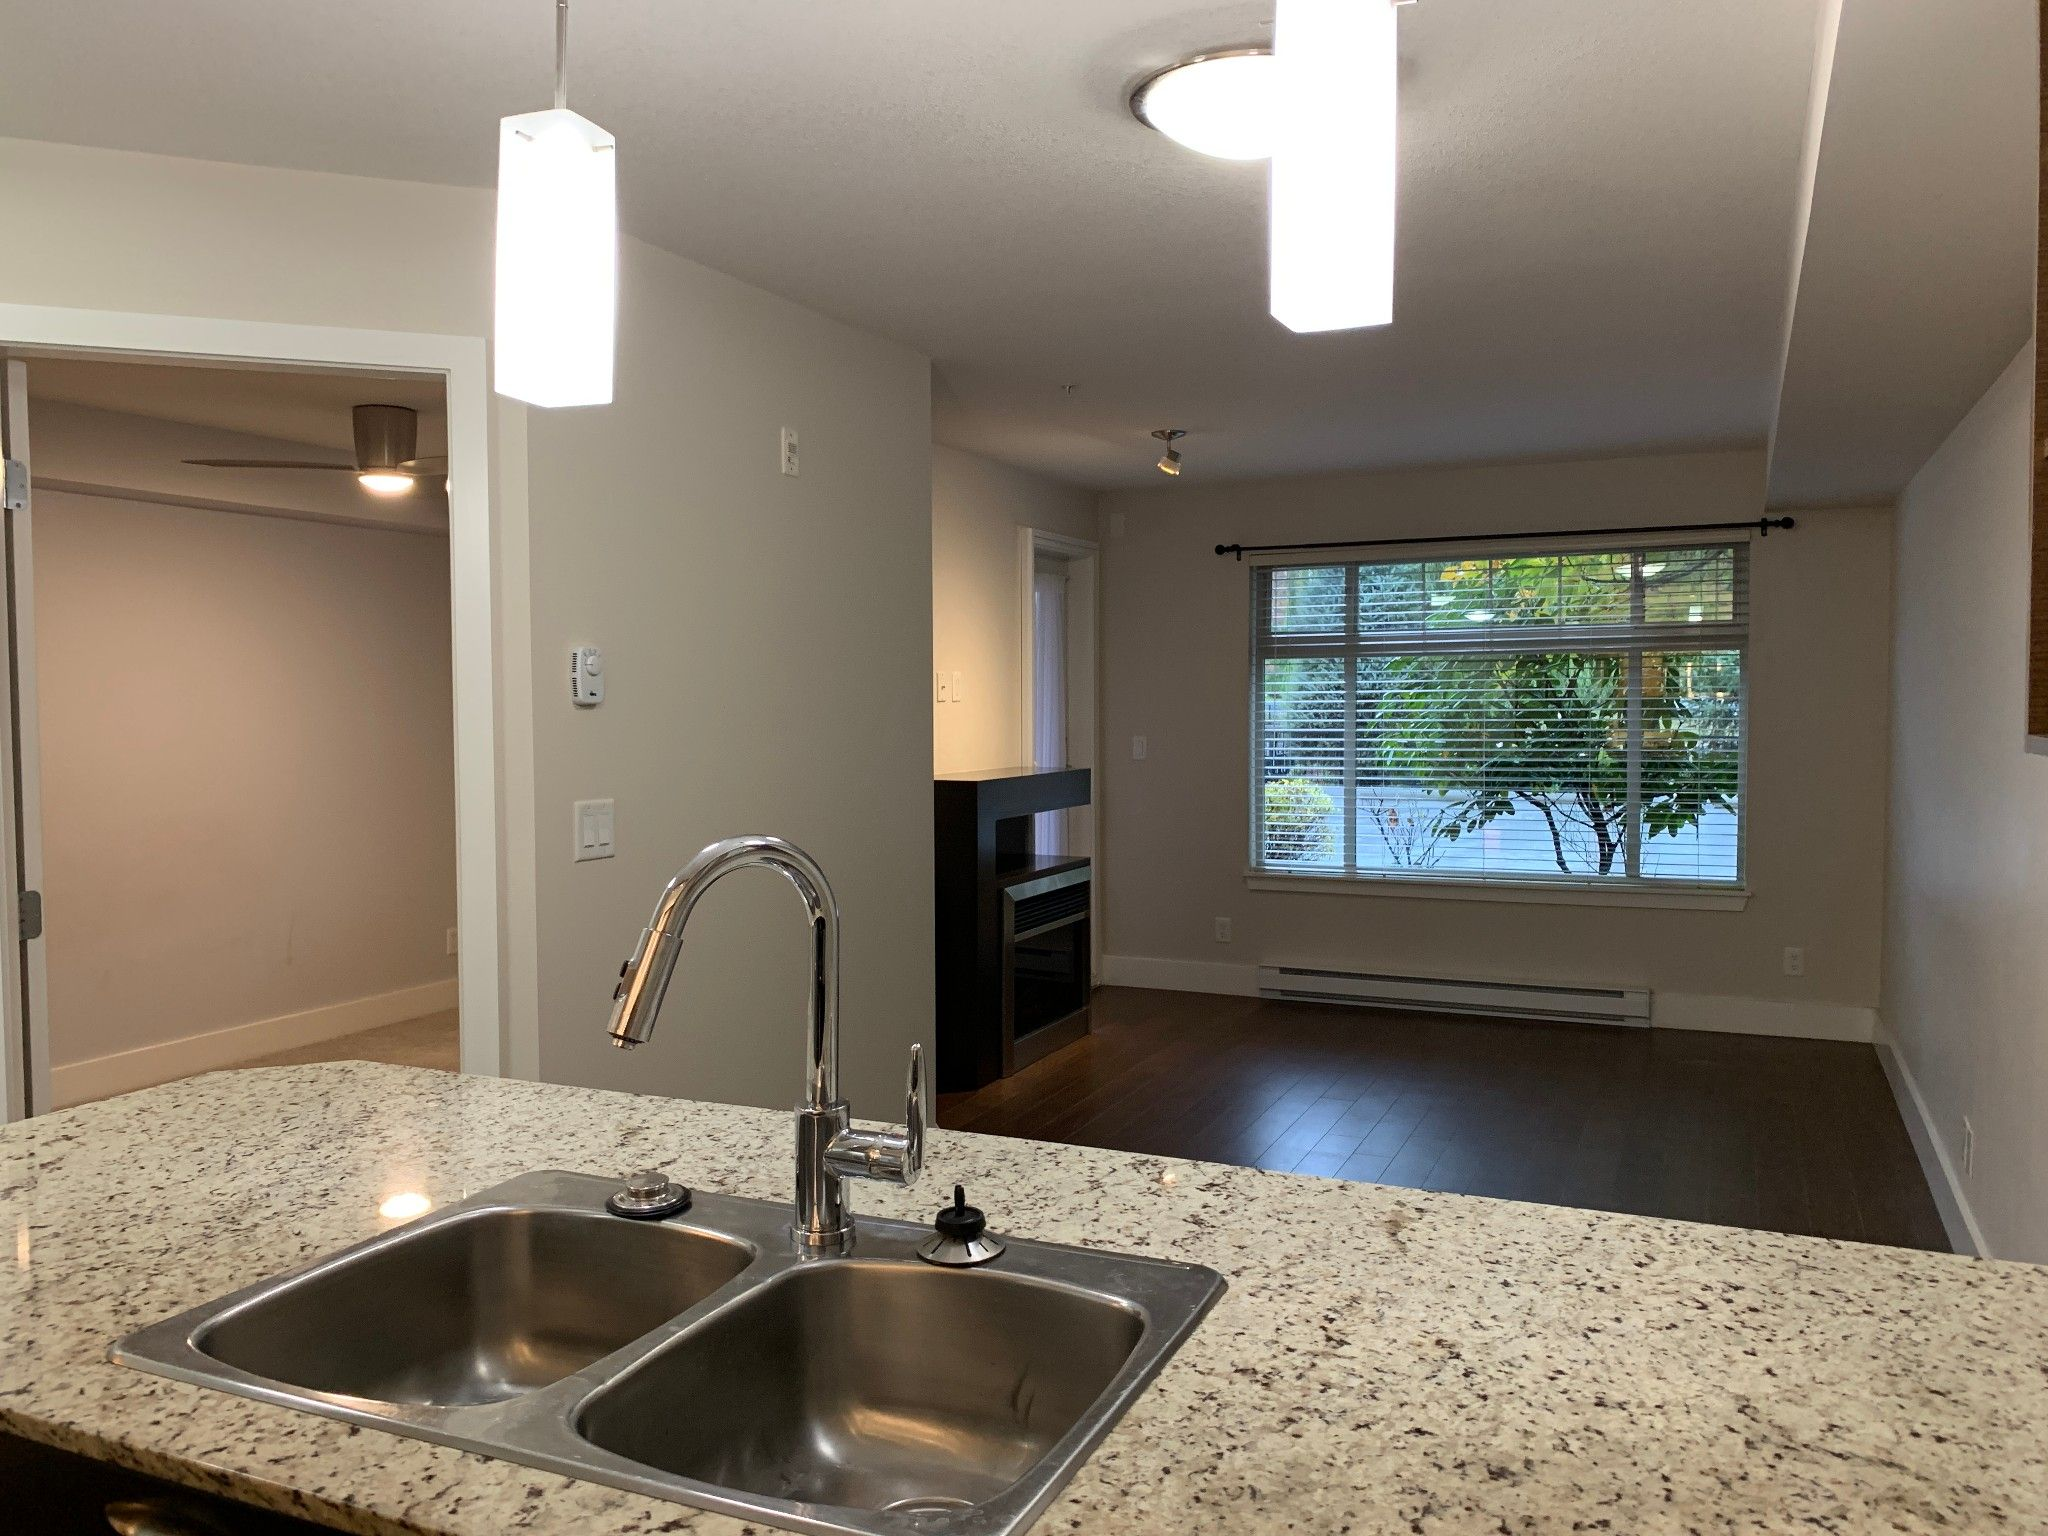 Photo 6: Photos: #131 2233 McKenzie Rd. in Abbotsford: Central Abbotsford Condo for rent